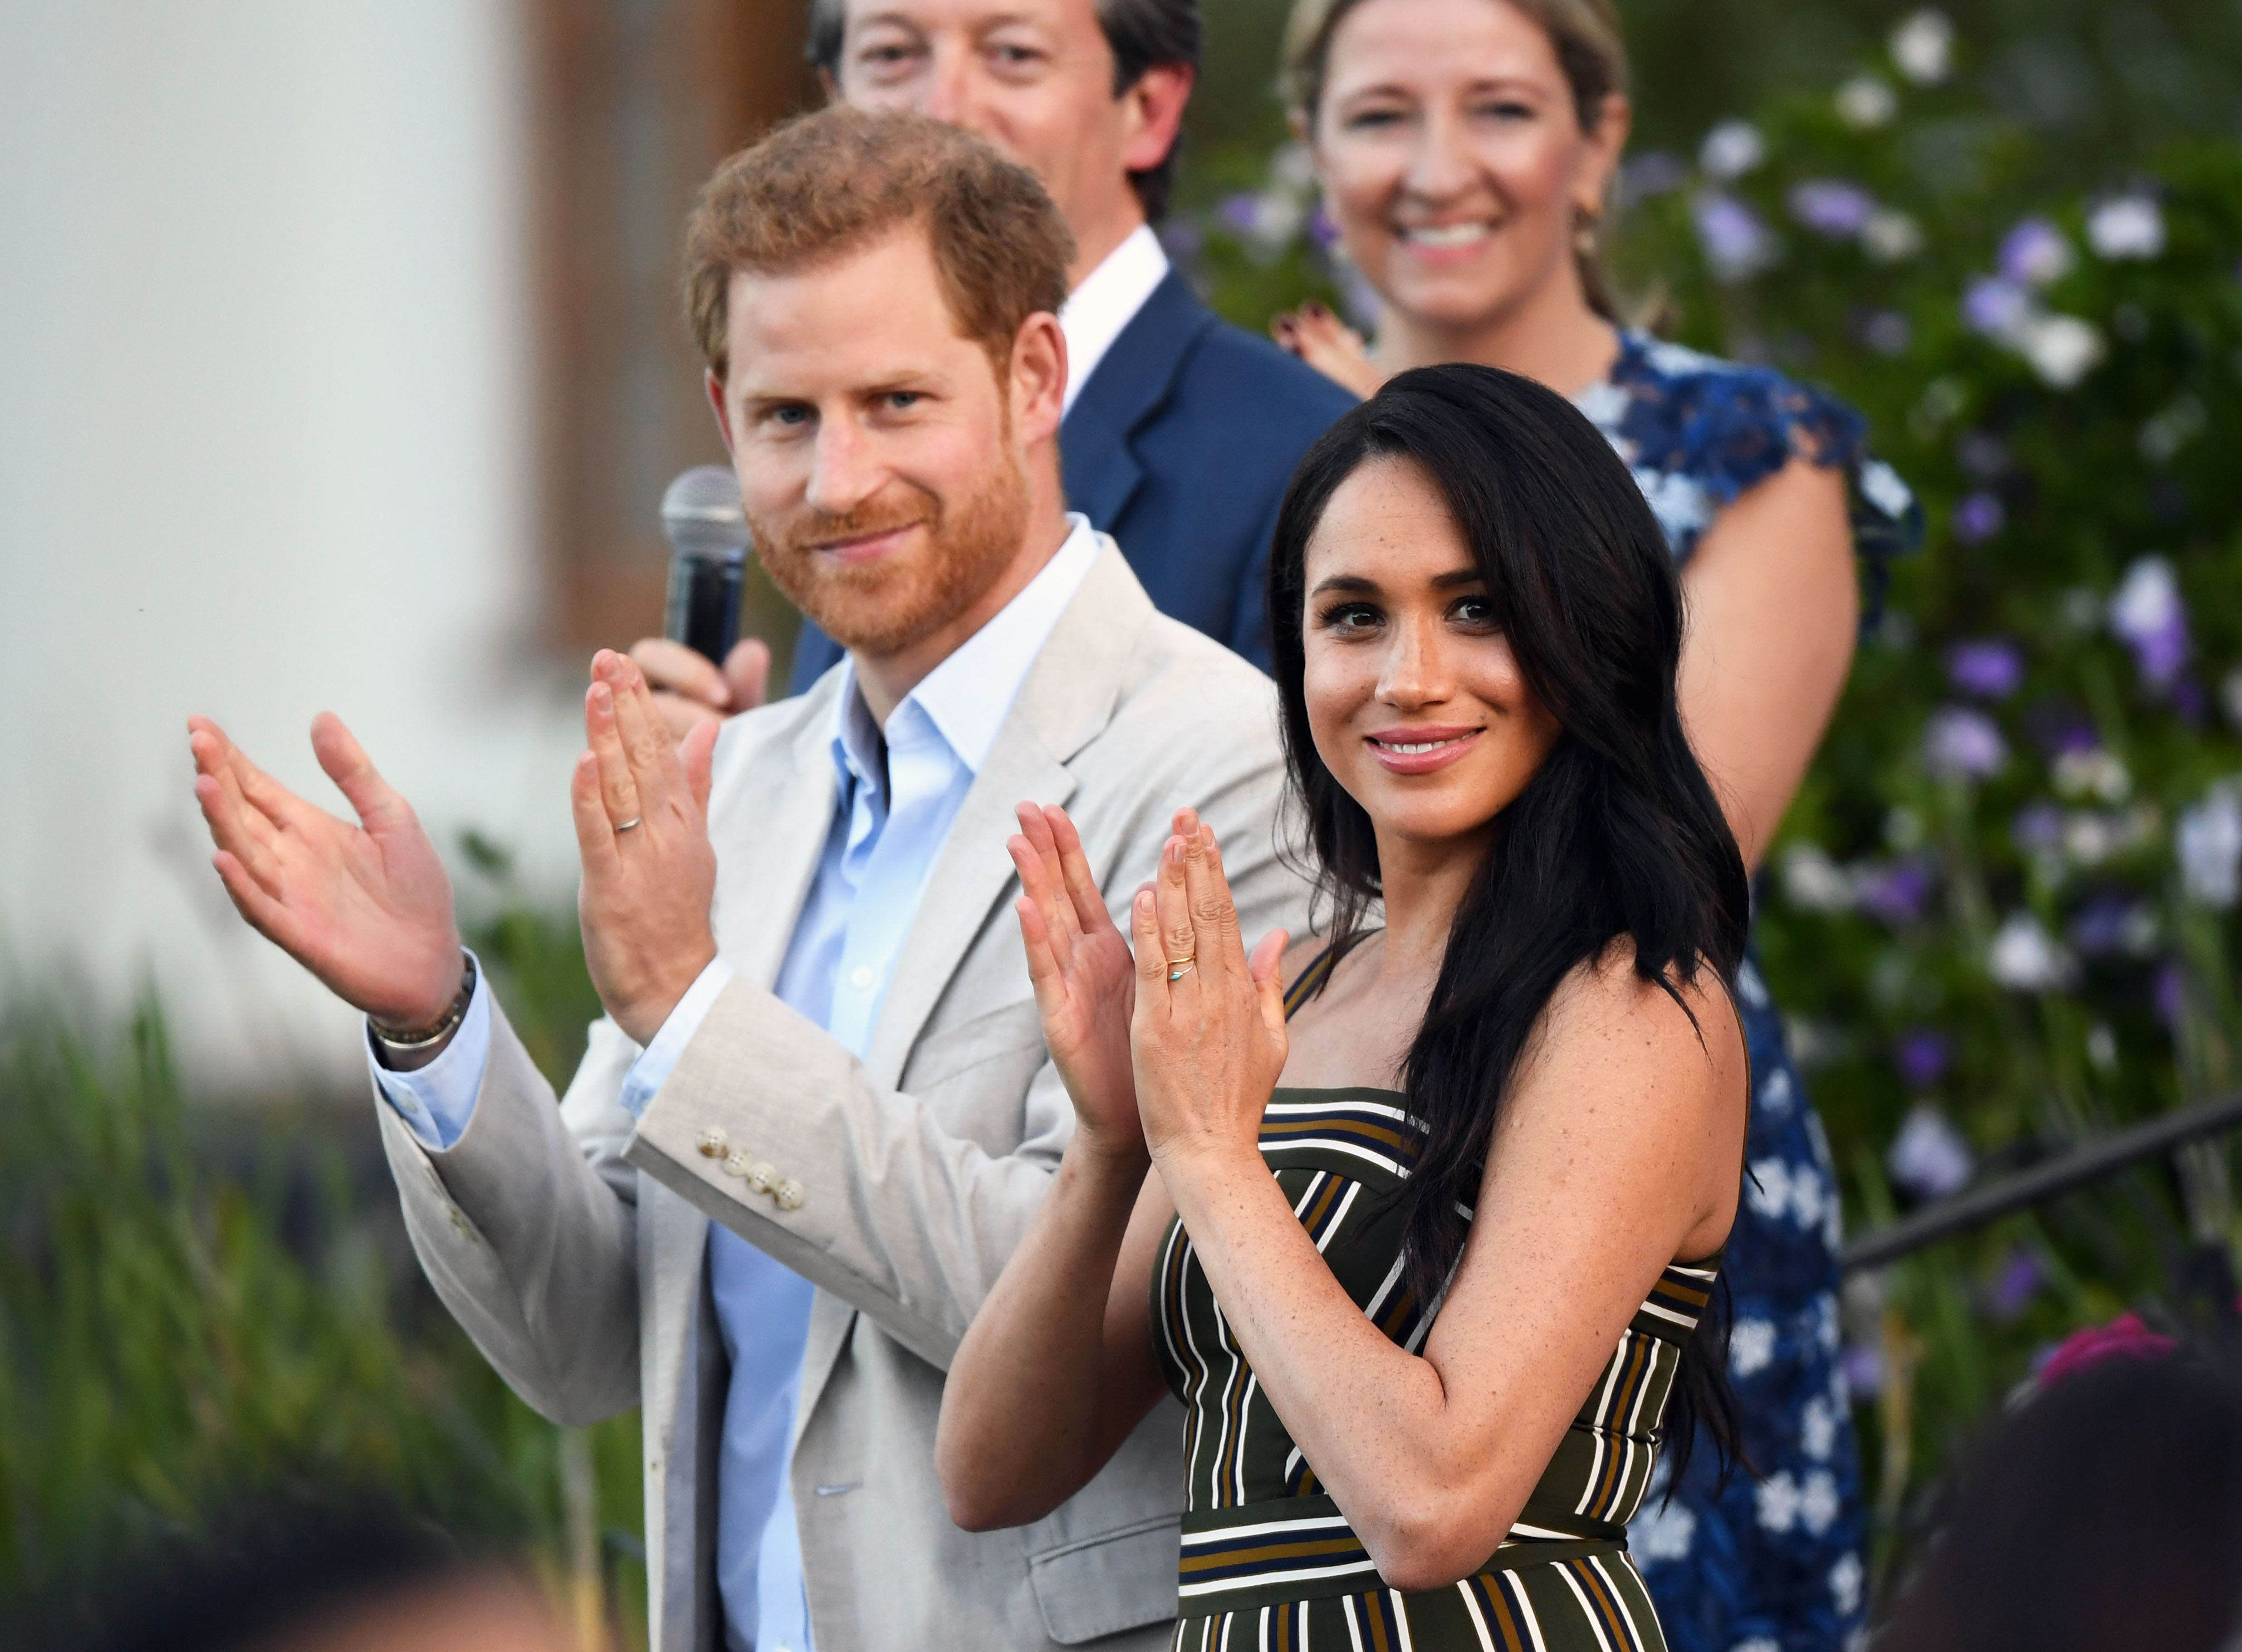 """A Crisis Expert Explains Why Prince Harry and Meghan Markle Did a """"Wonderful Job"""" in Their New Documentary"""